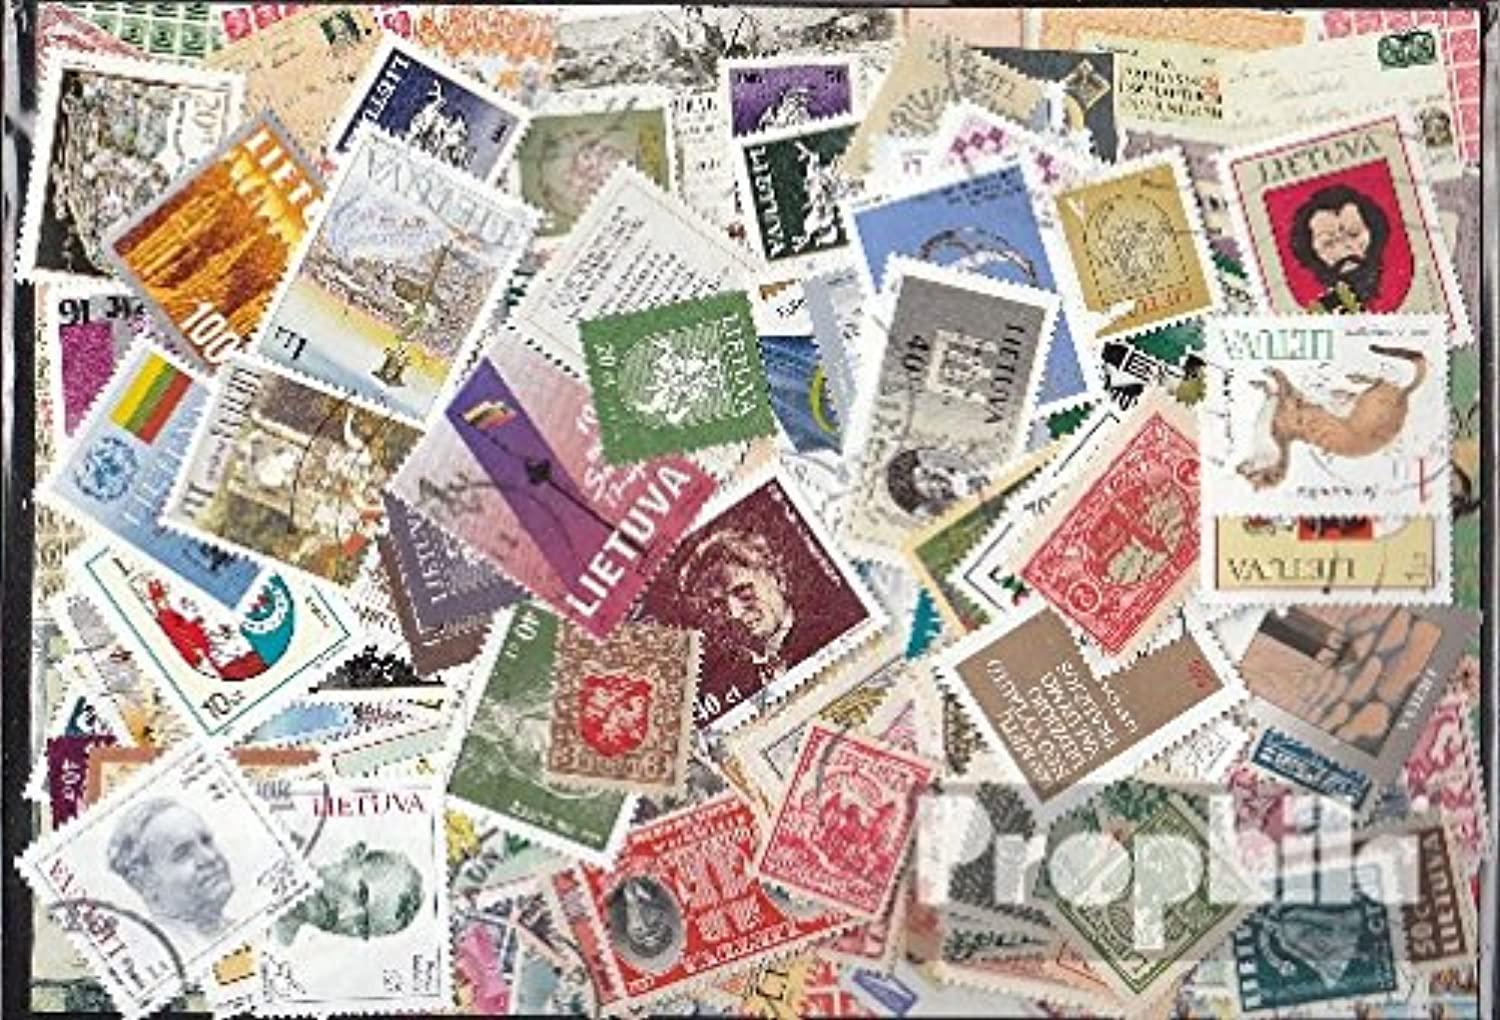 Lithuania 150 different stamps (Stamps for collectors)